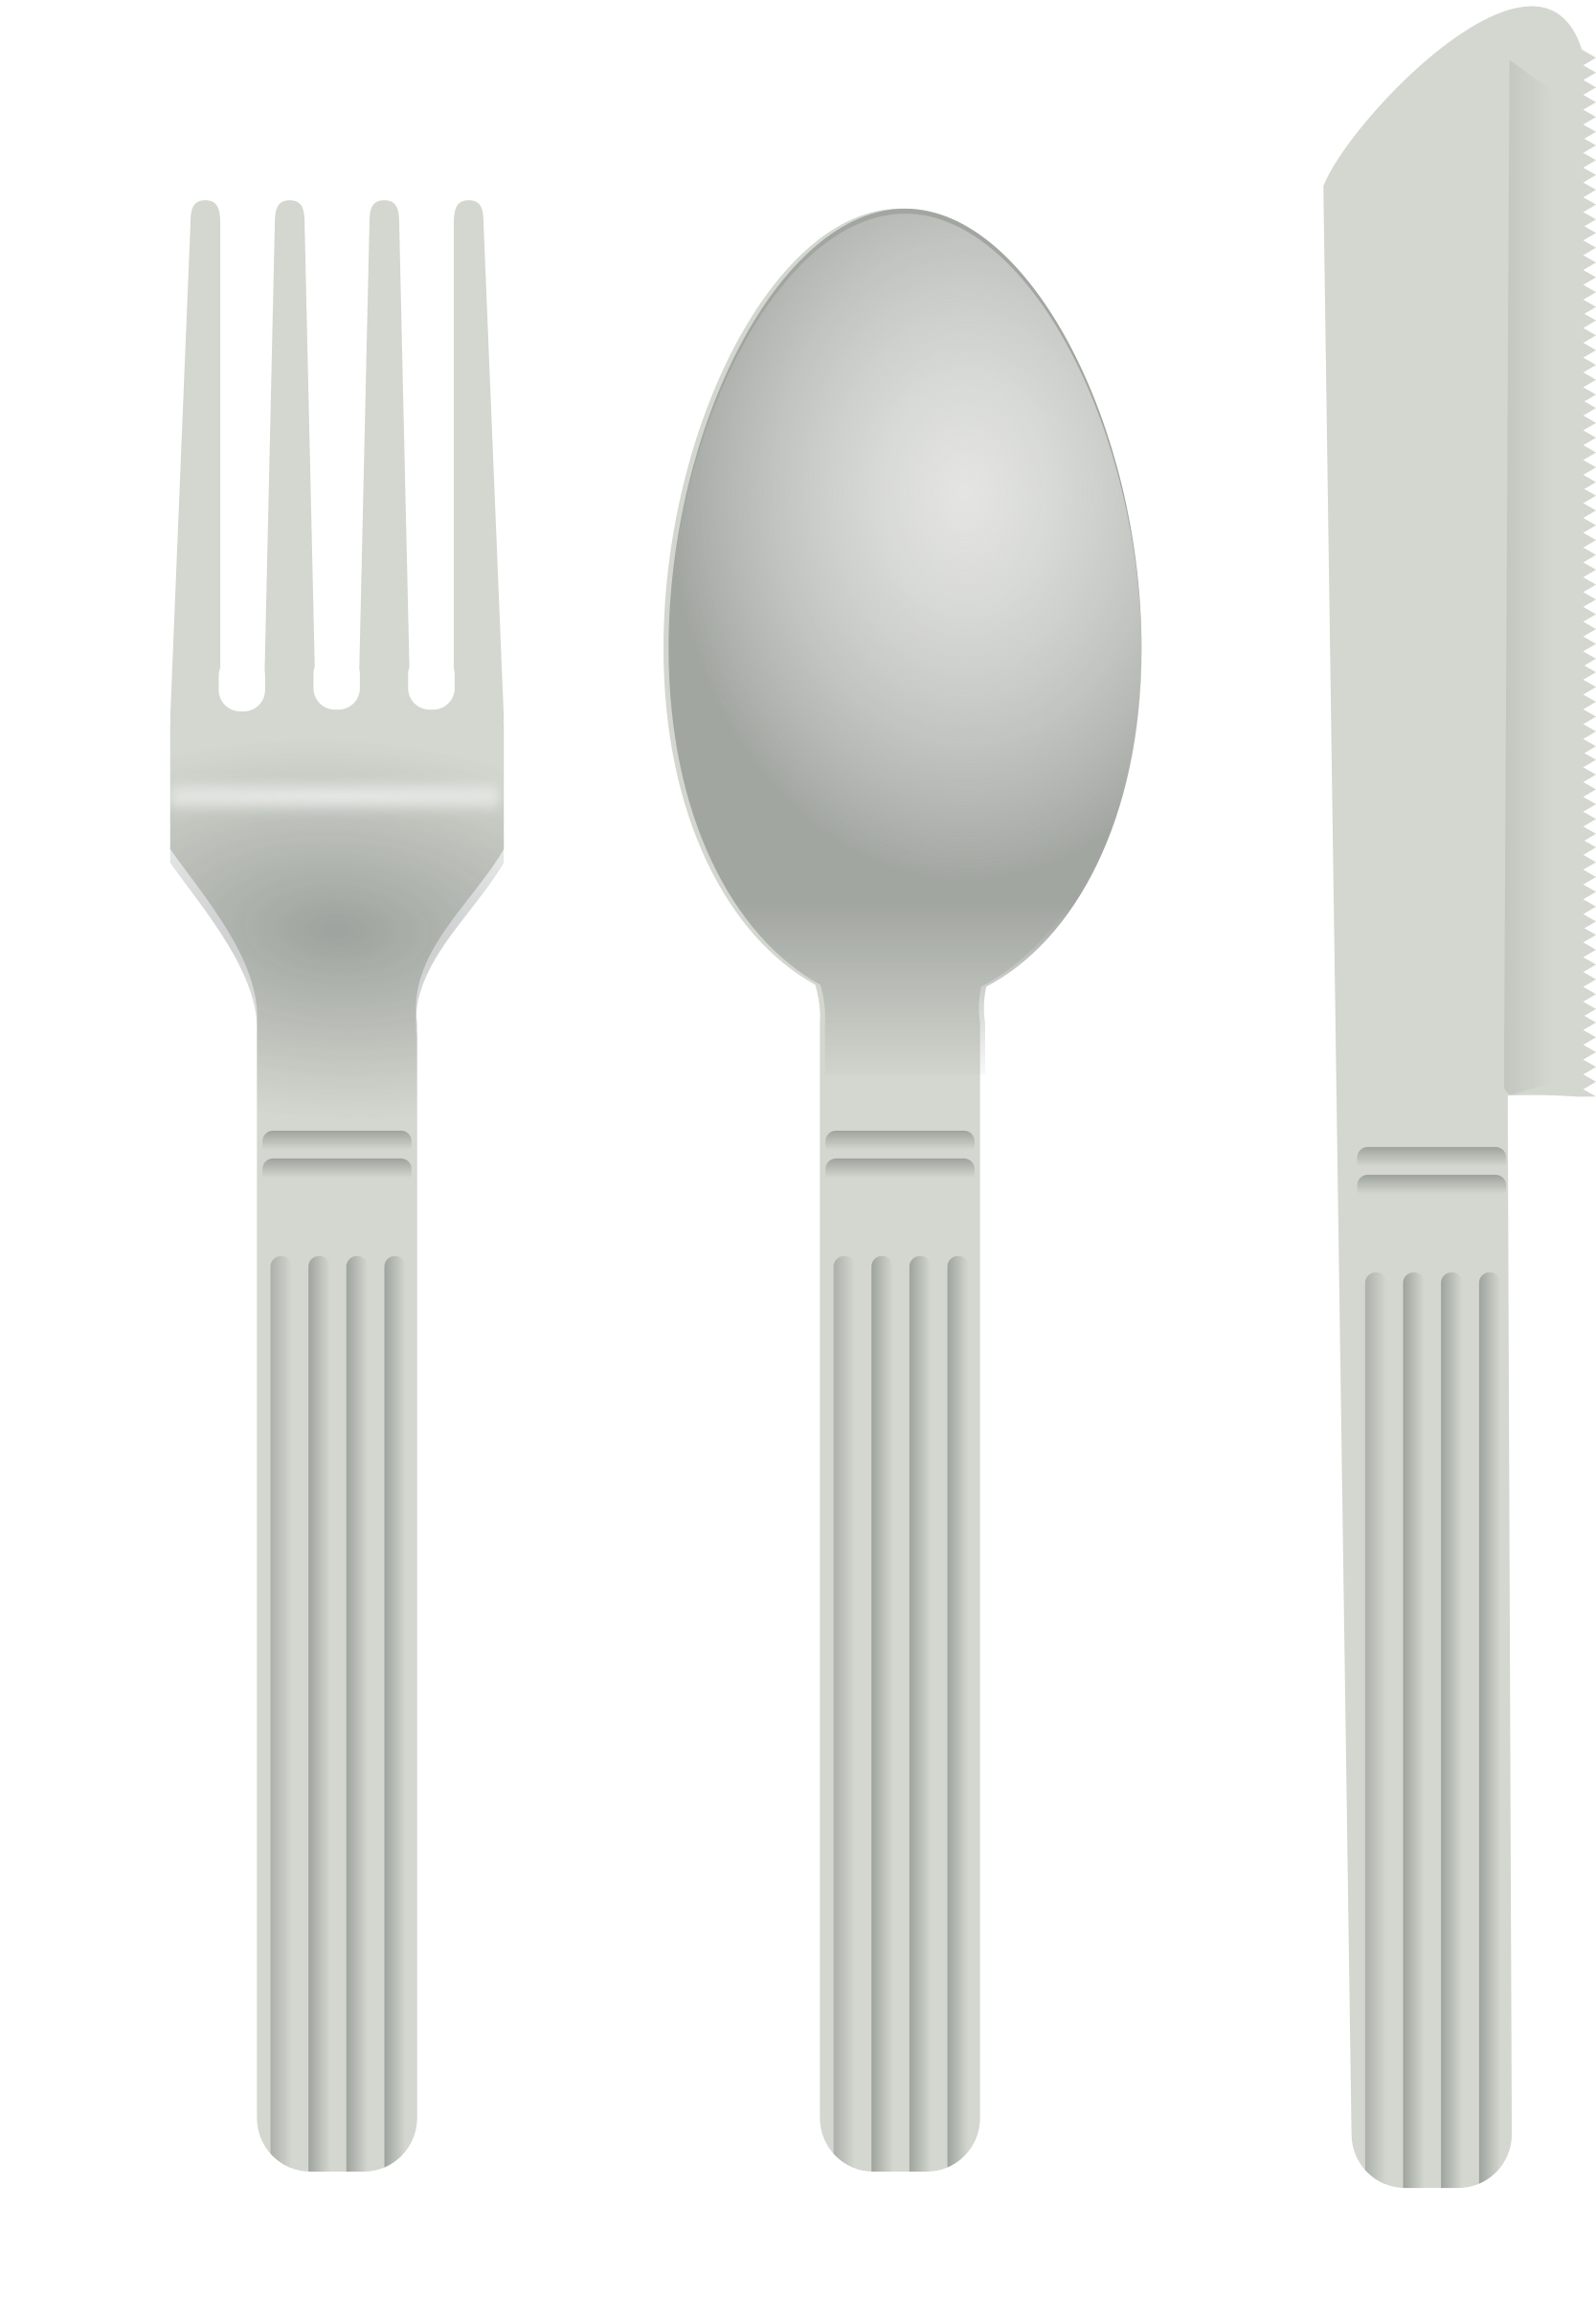 White clipart fork. And spoon big image